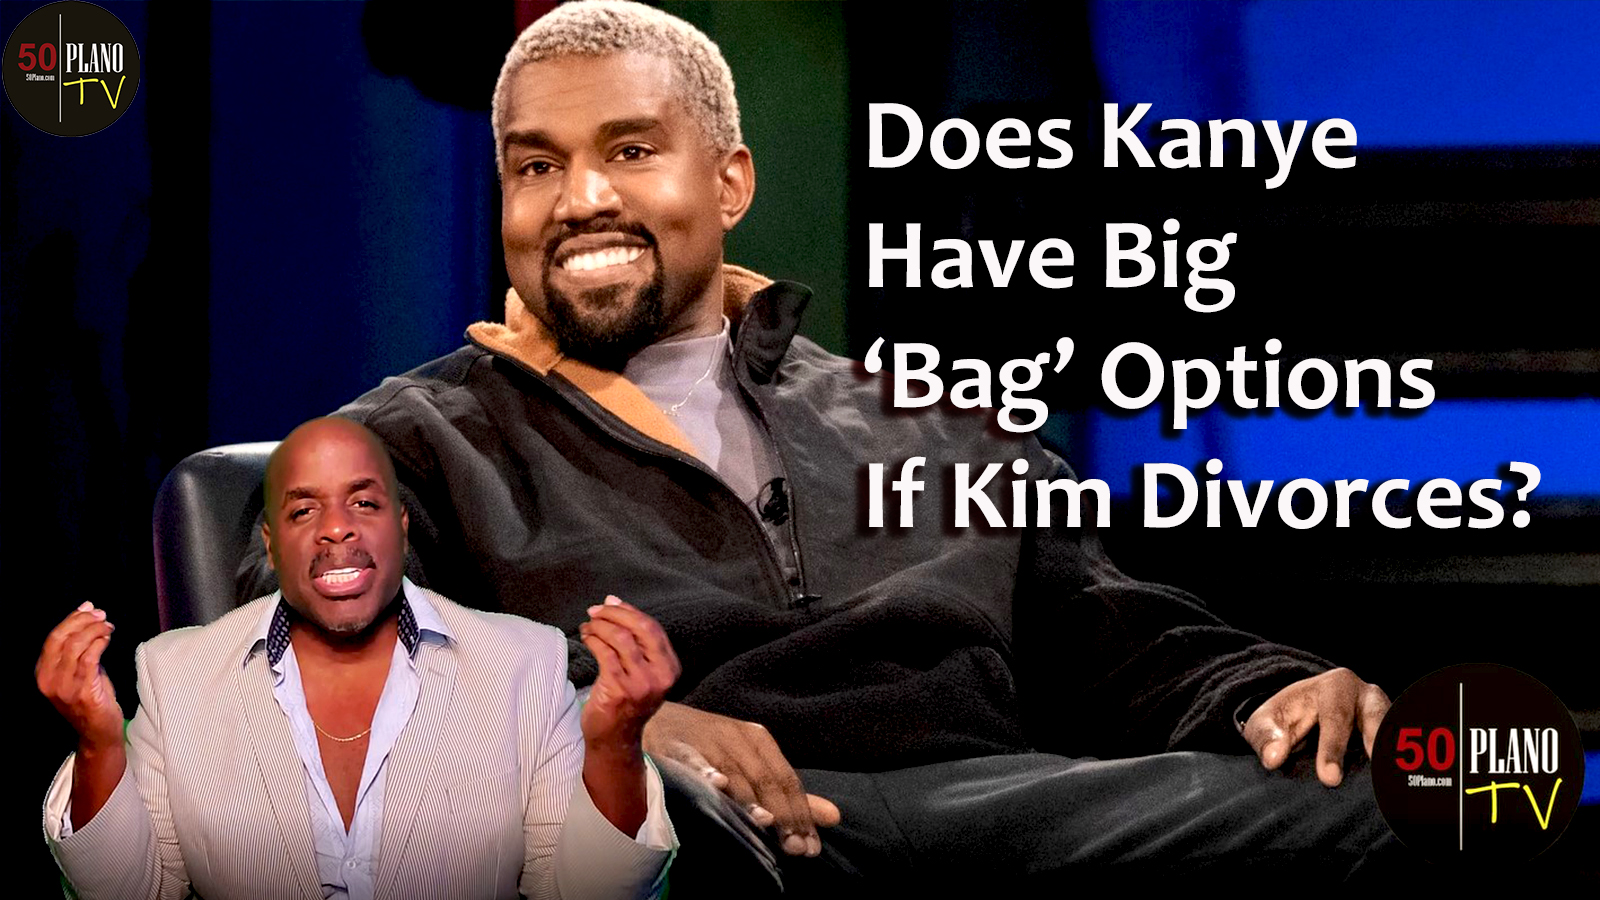 Does Kanye Have Big 'Bag' Options If Kim Divorces?